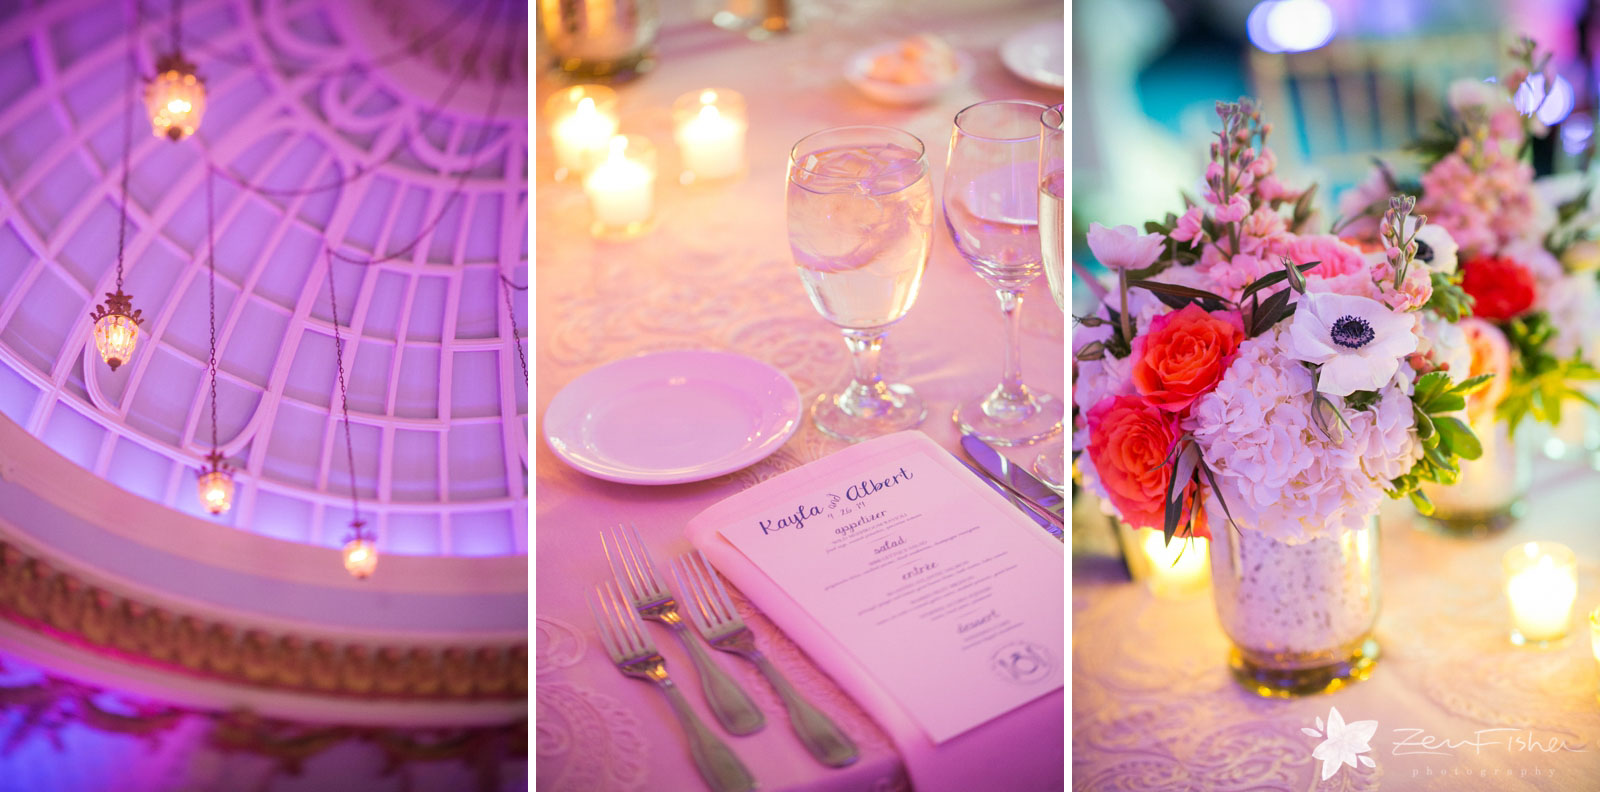 Details of dome ceiling, antique lanterns, place settings, and centerpieces with flowers and candles